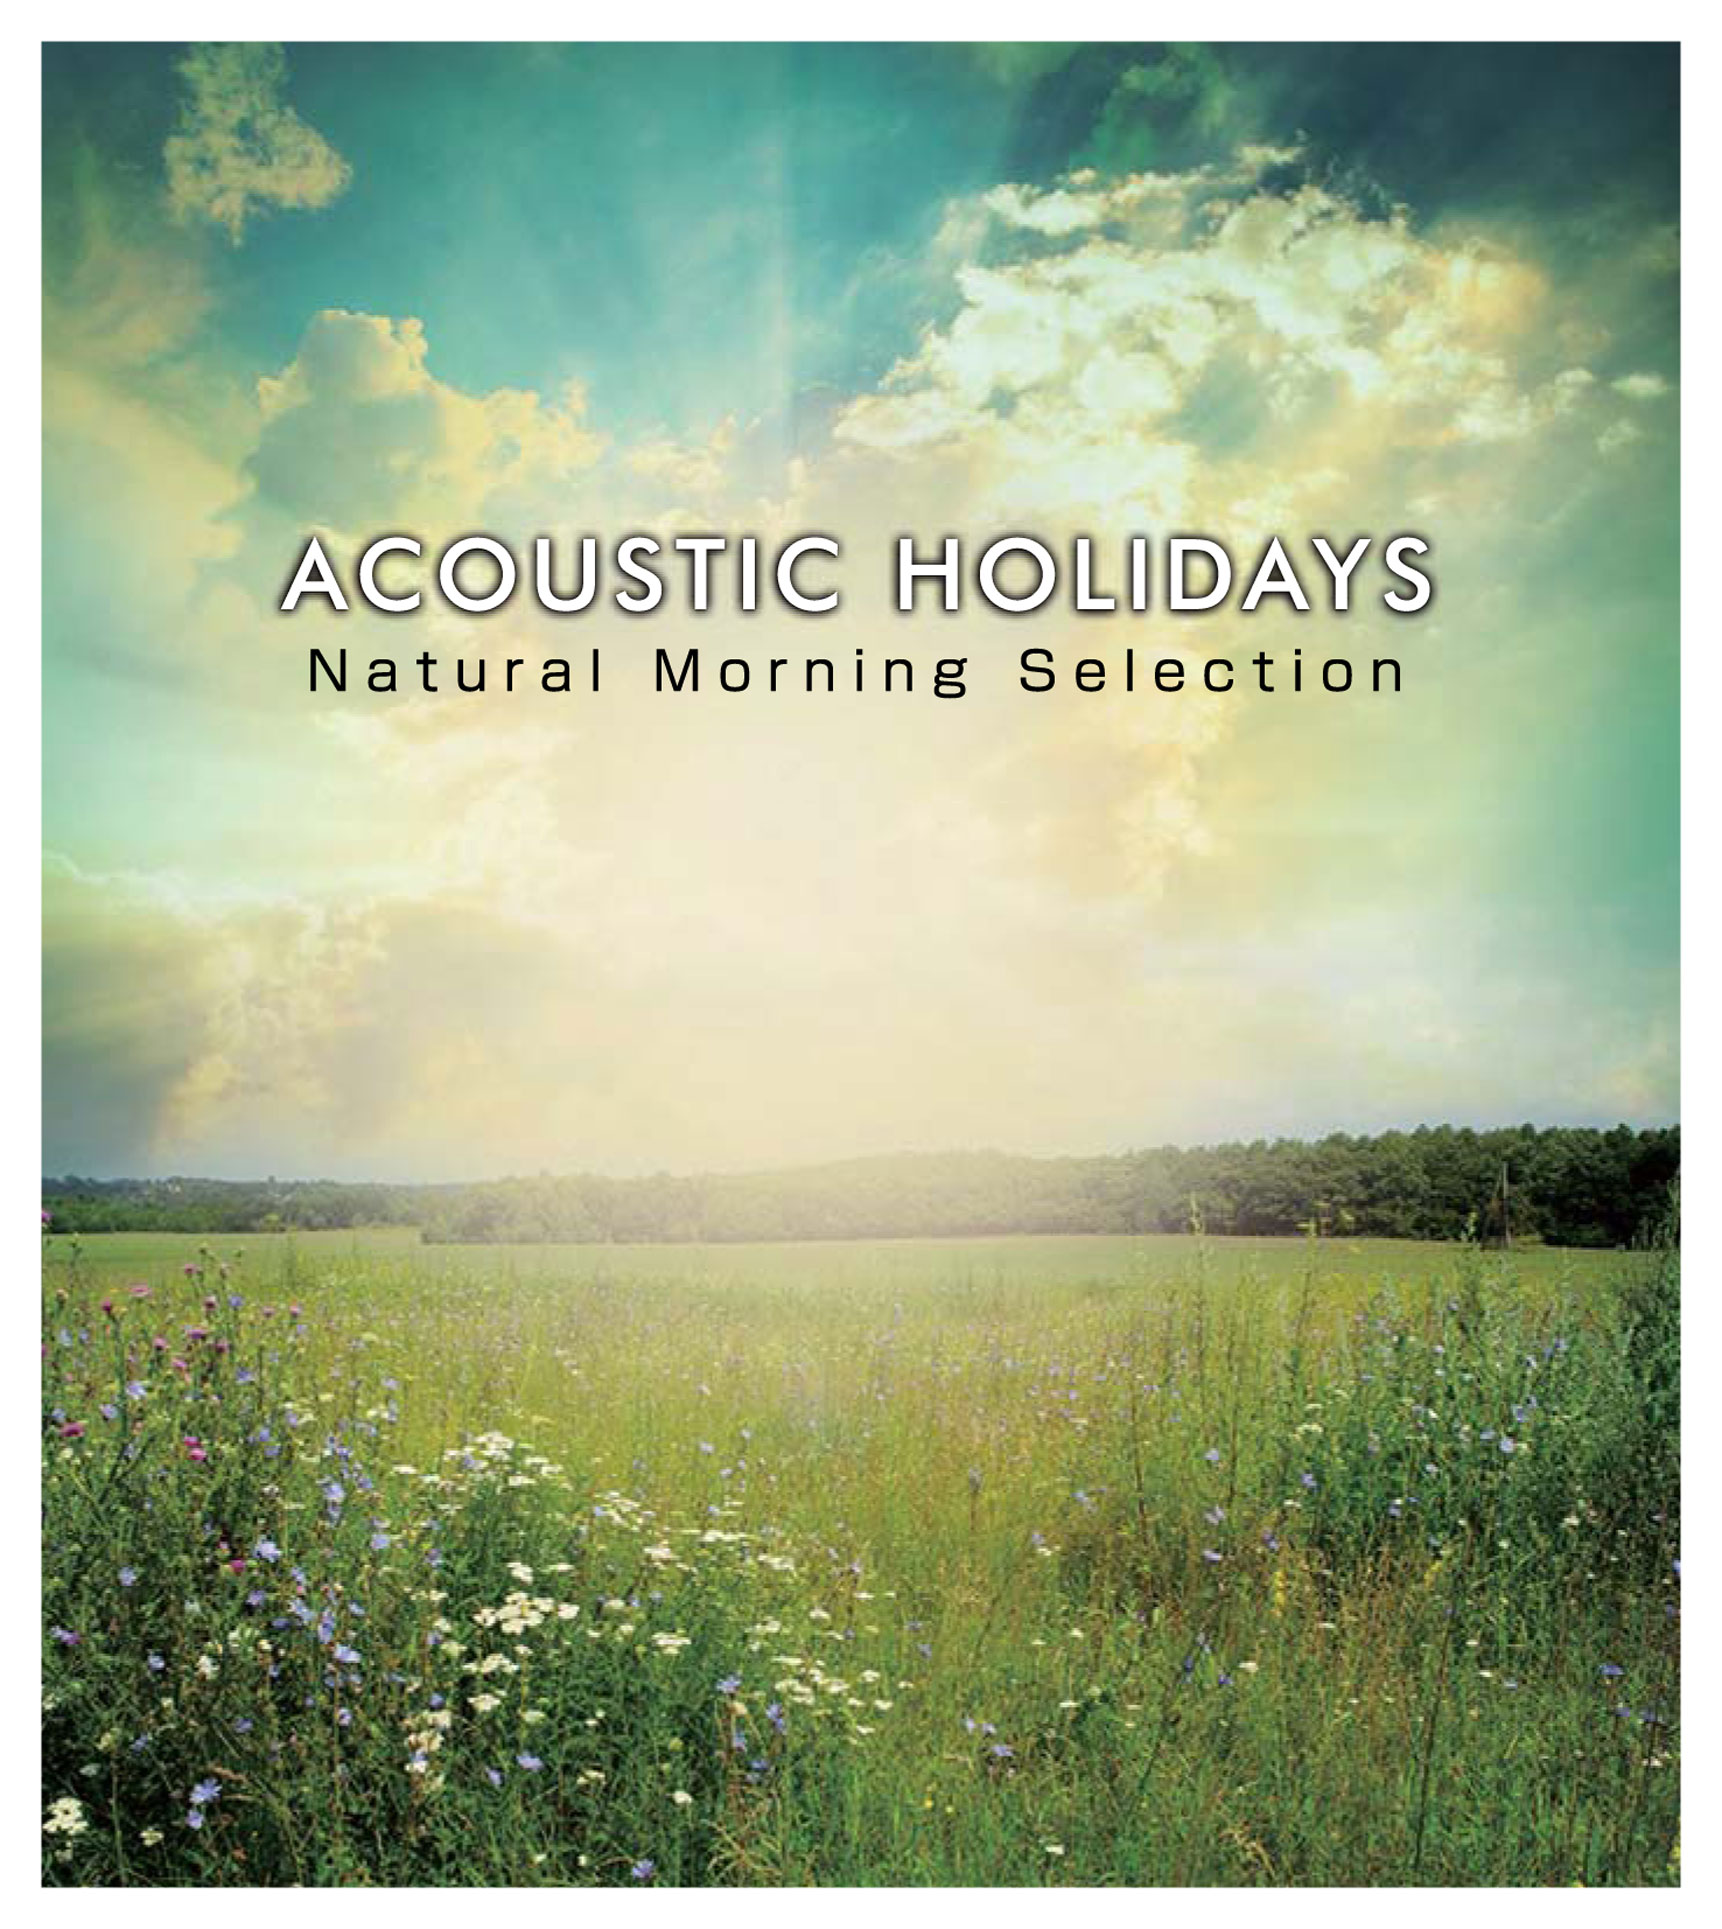 ACOUSTIC HOLIDAYS -Natural Morning Selection-